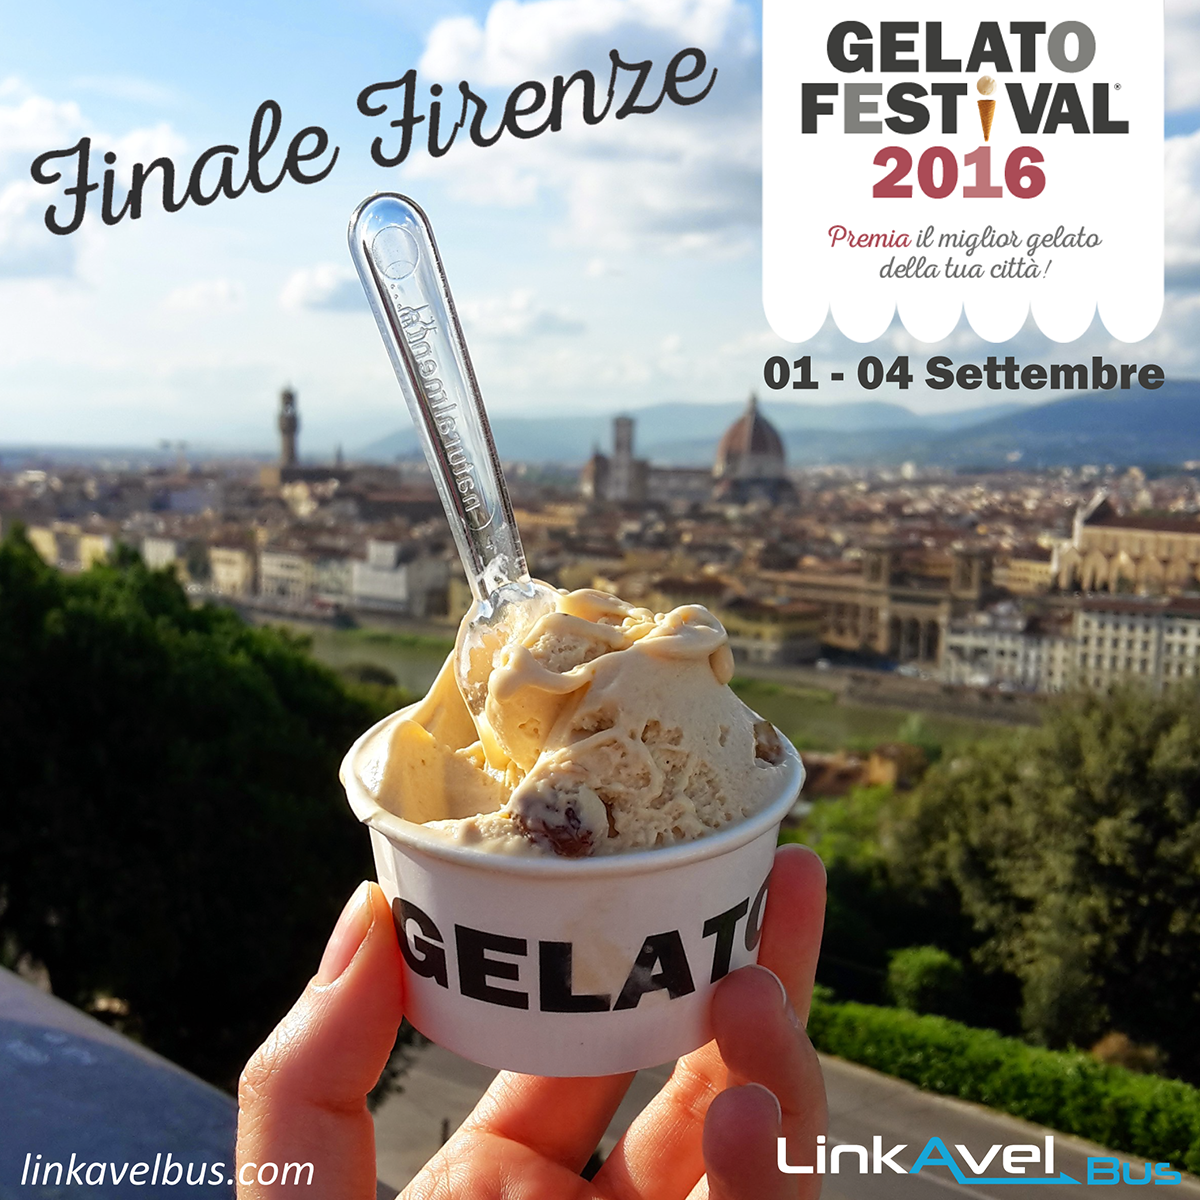 Gelato Festival Firenze. Linkavel